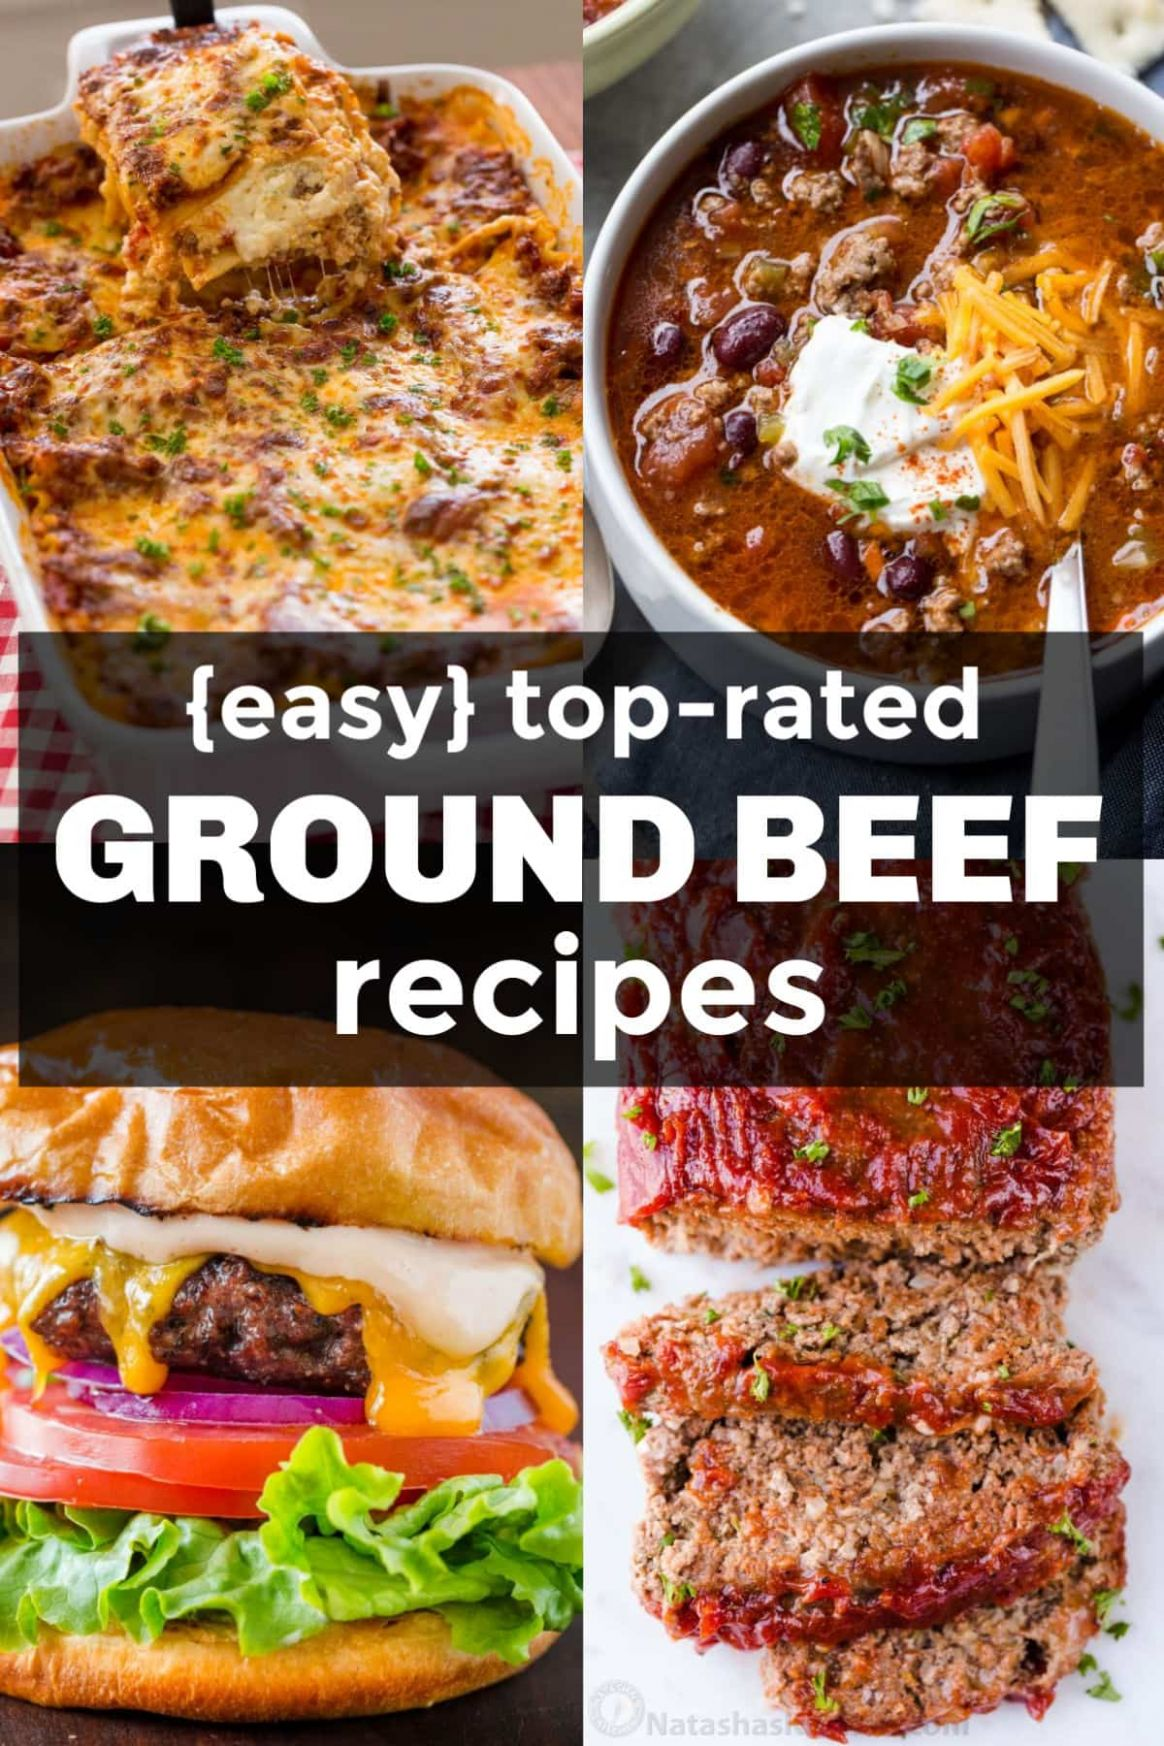 How to Cook Ground Beef for Ground Beef Recipes - Easy Recipes Using Ground Beef